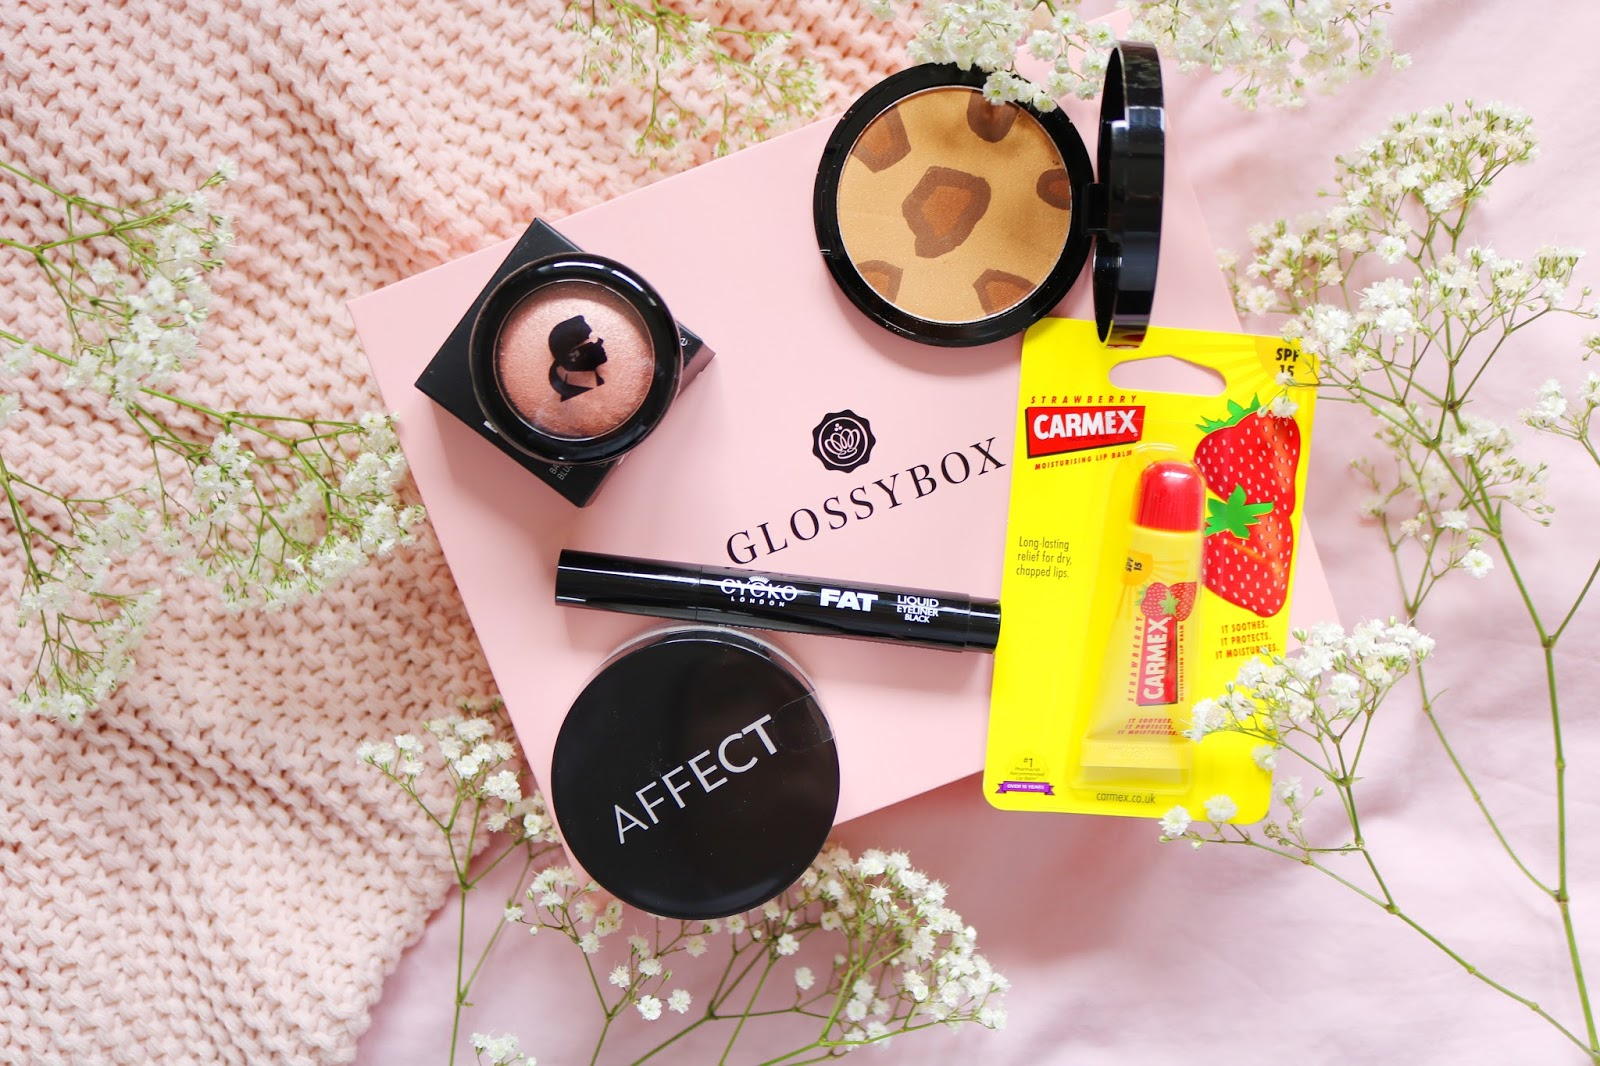 Glossy Box: April 2018 - Nostalgic Box